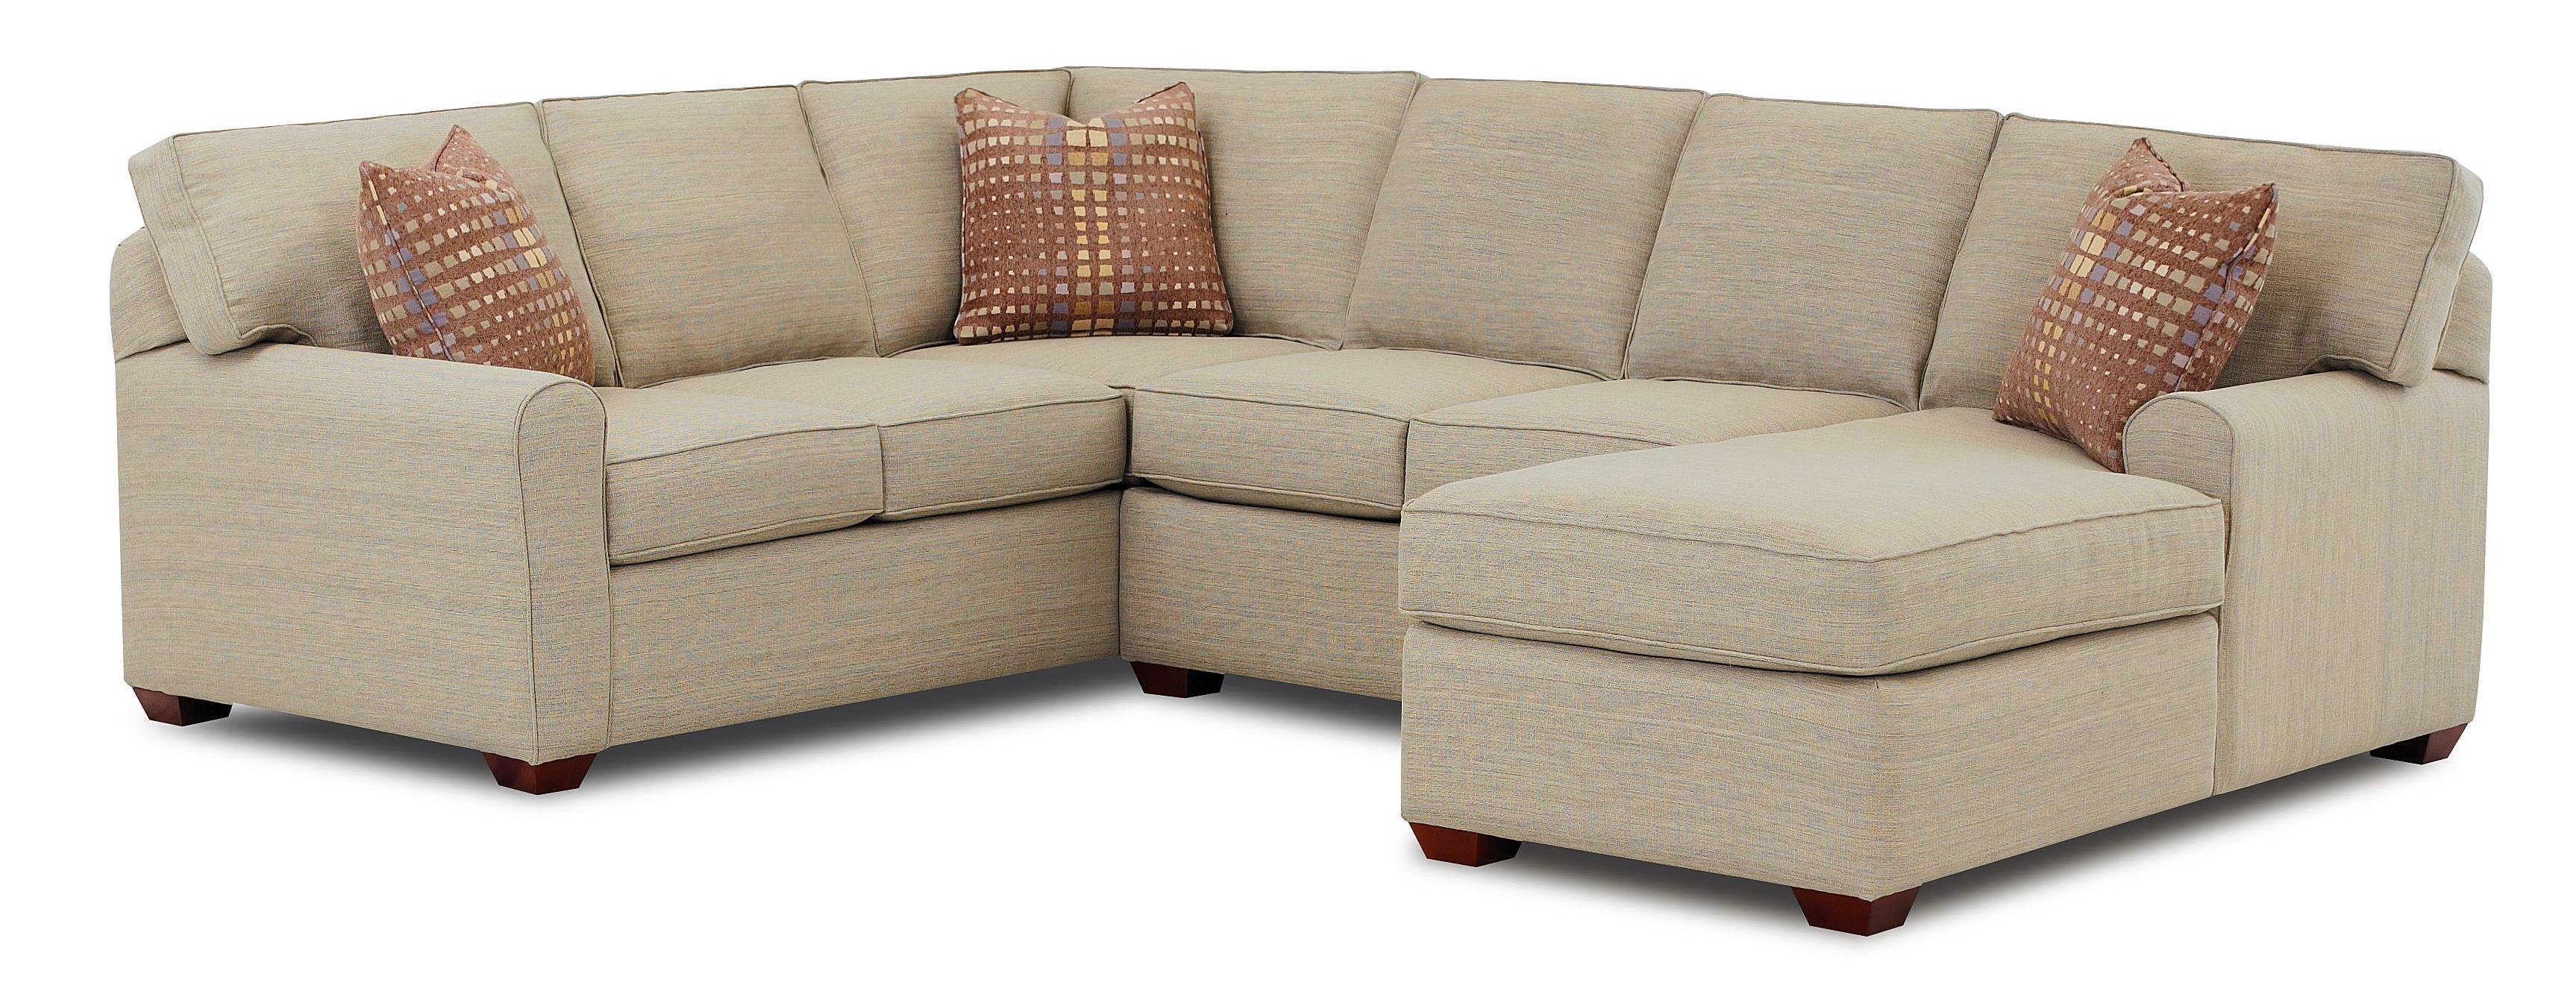 sofa sectionals with chaise cheapest sofas for sale sectional right facing lounge by